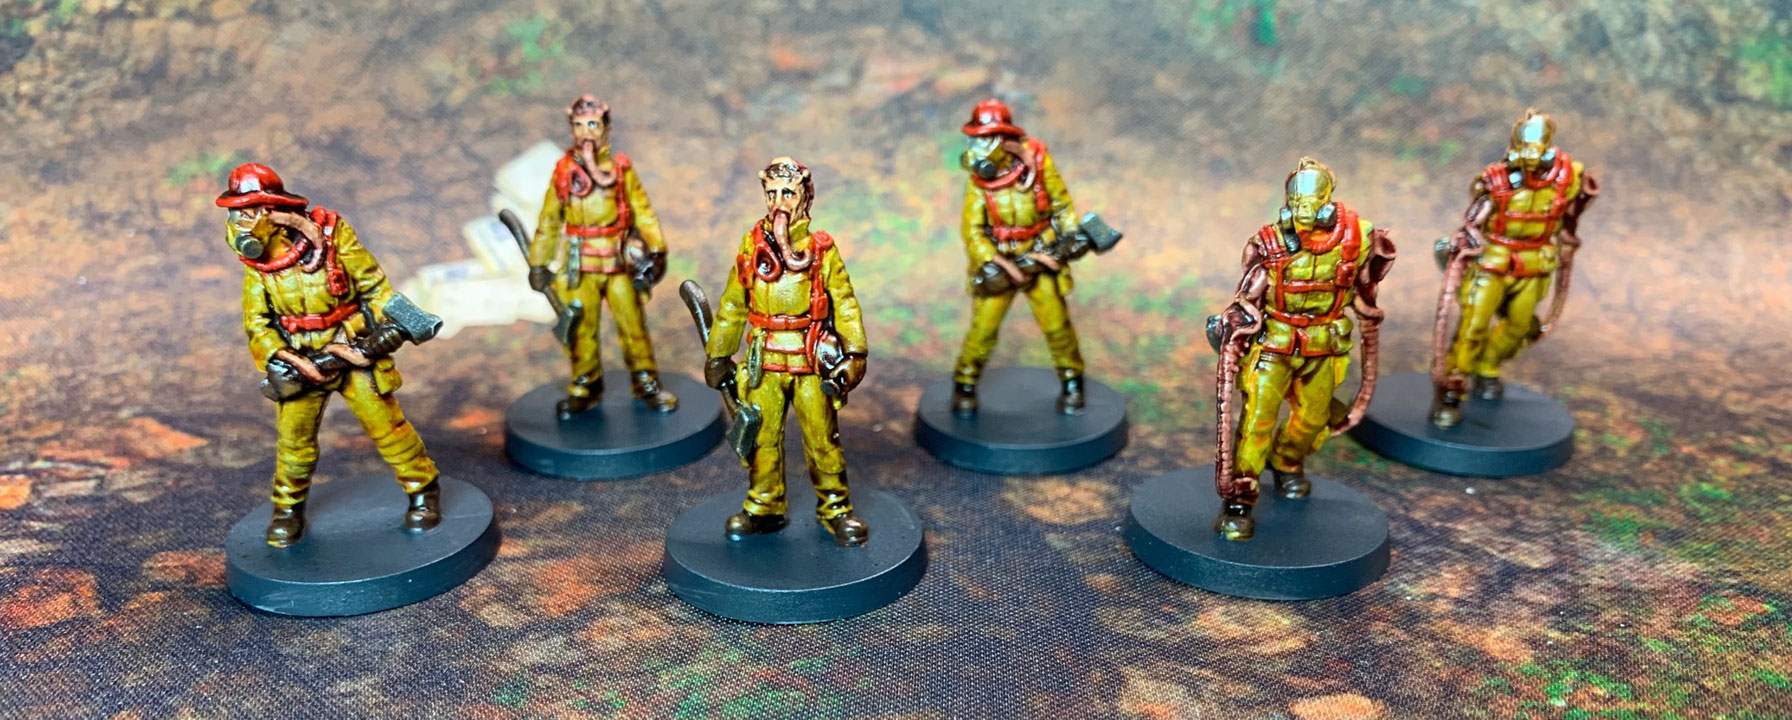 AD_TheOTHERS_Firemen_02.jpg